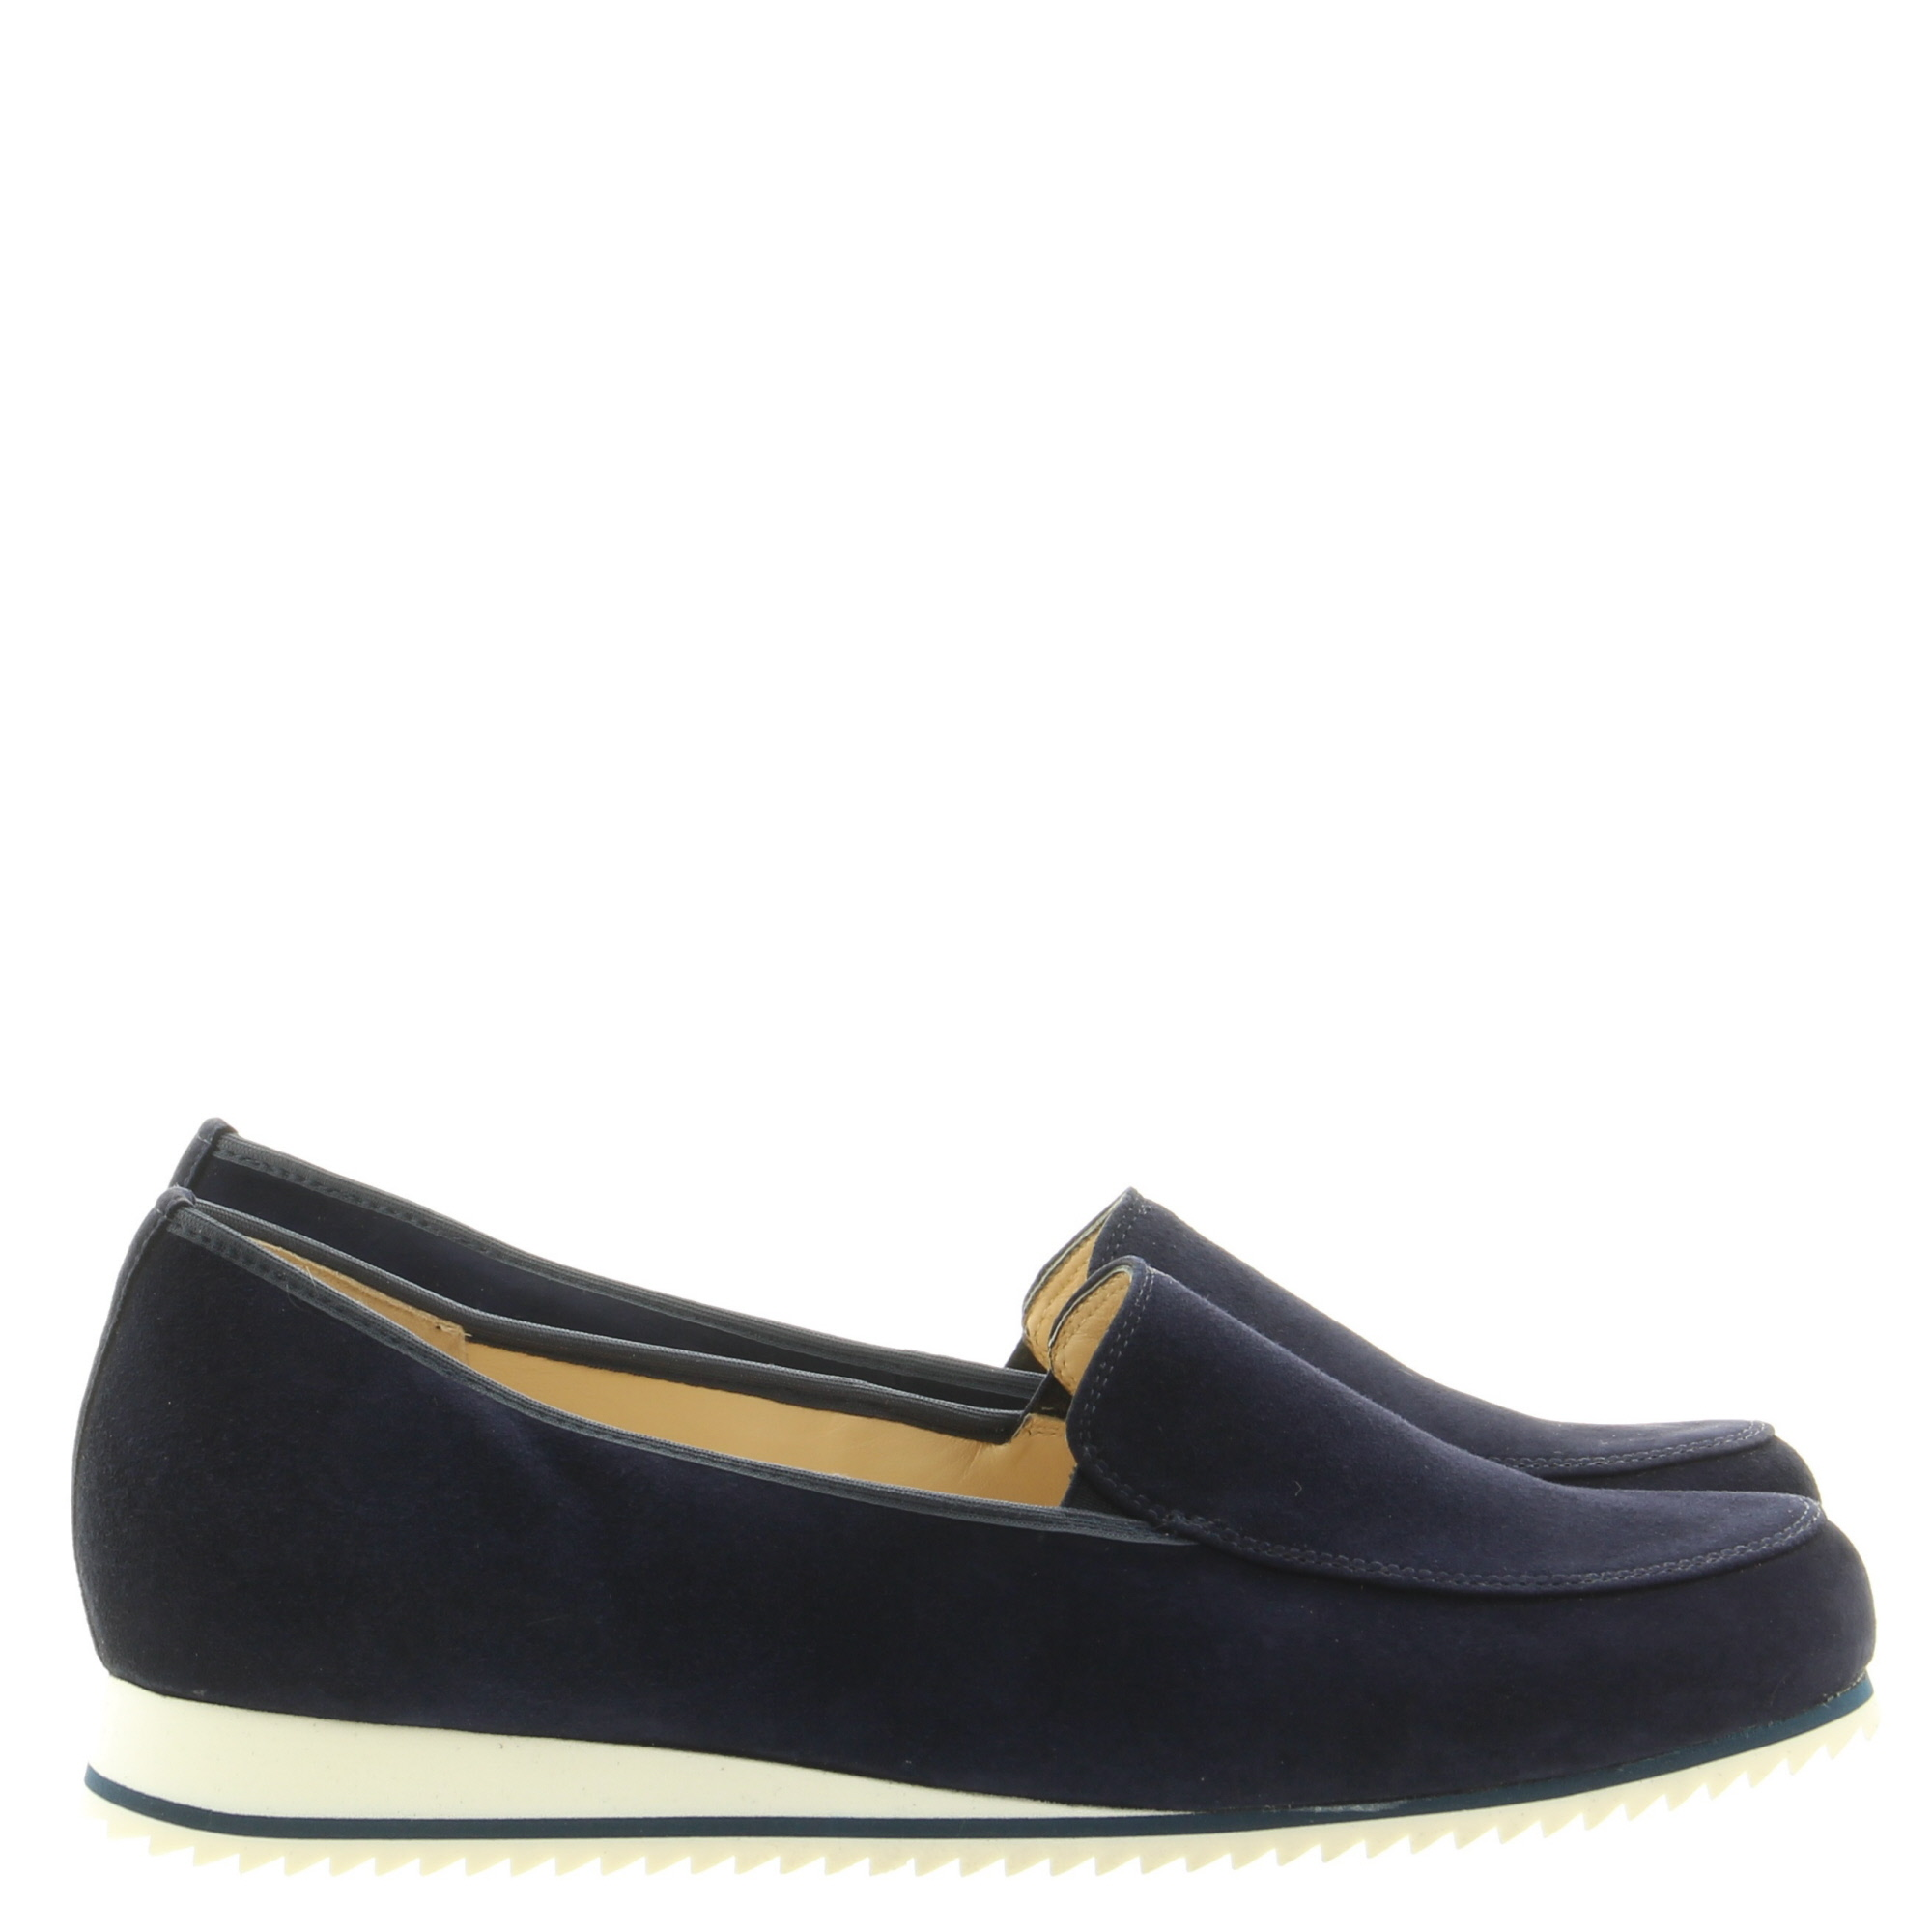 Hassia Shoes 301642 Piacenza 3200 Blue